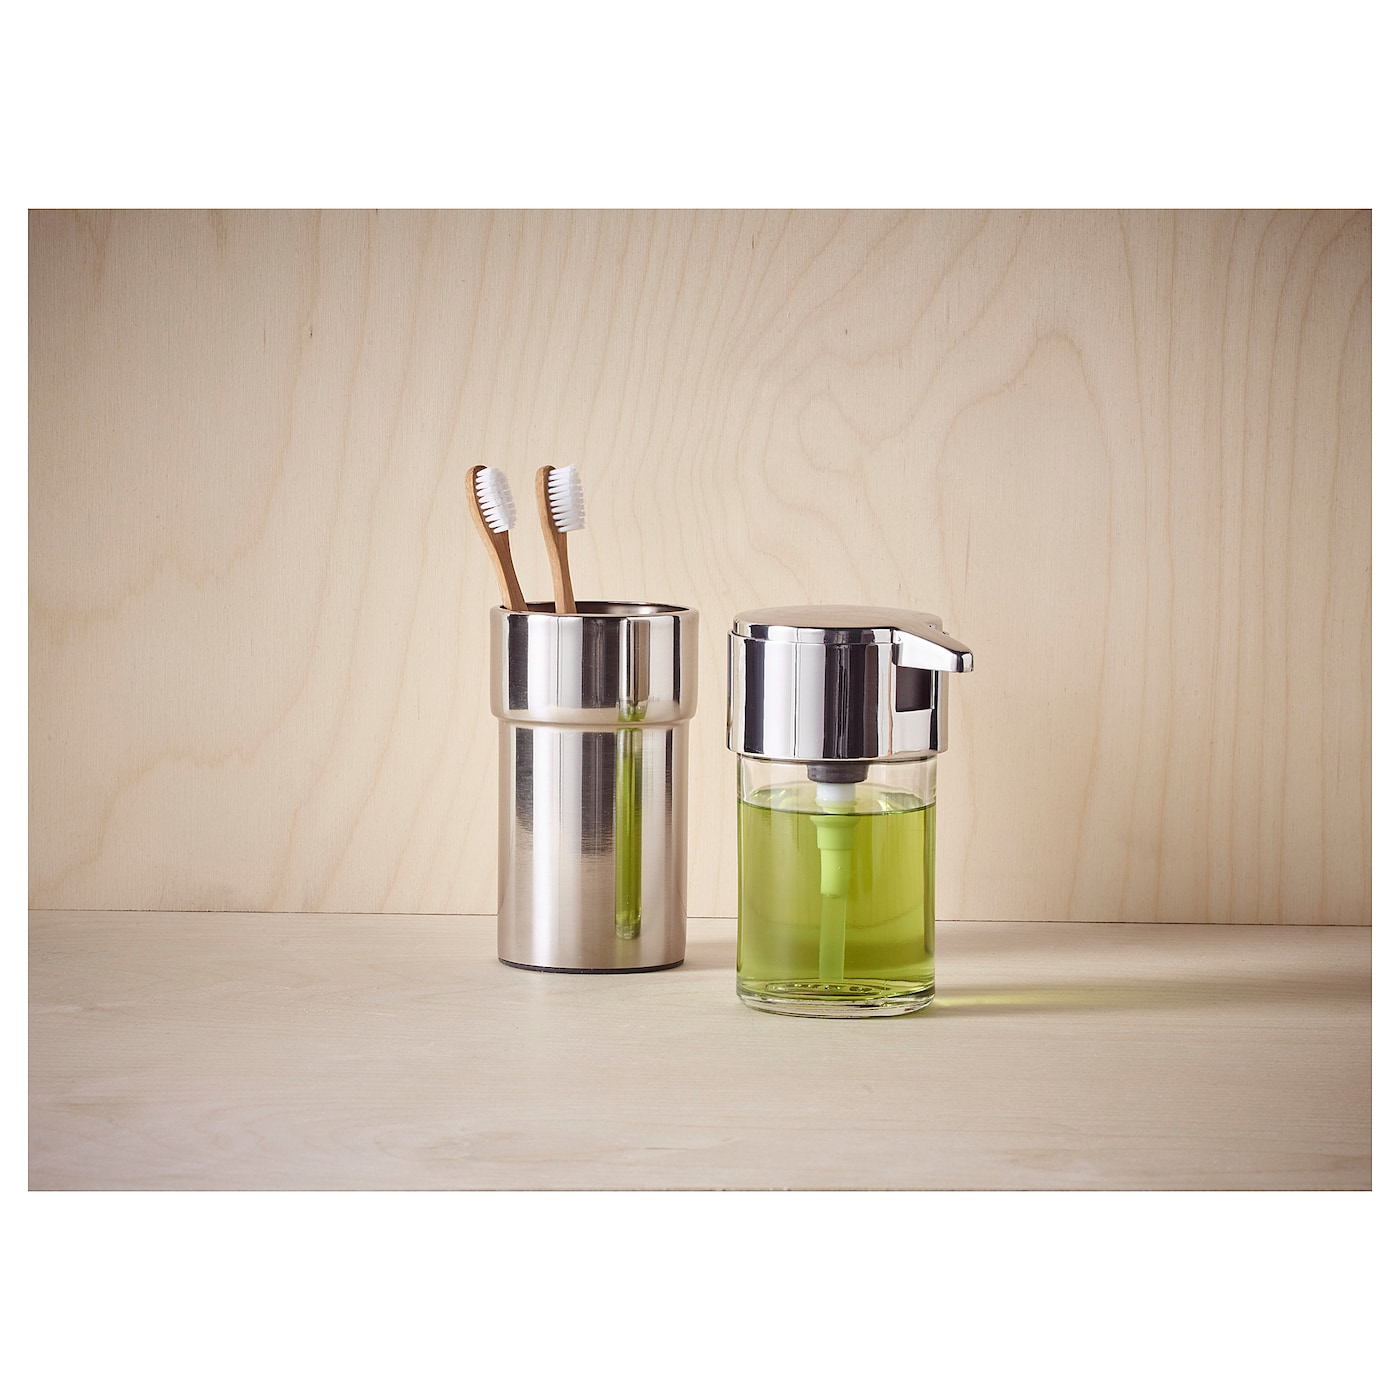 IKEA KALKGRUND toothbrush holder The chrome finish is durable and resistant to corrosion.